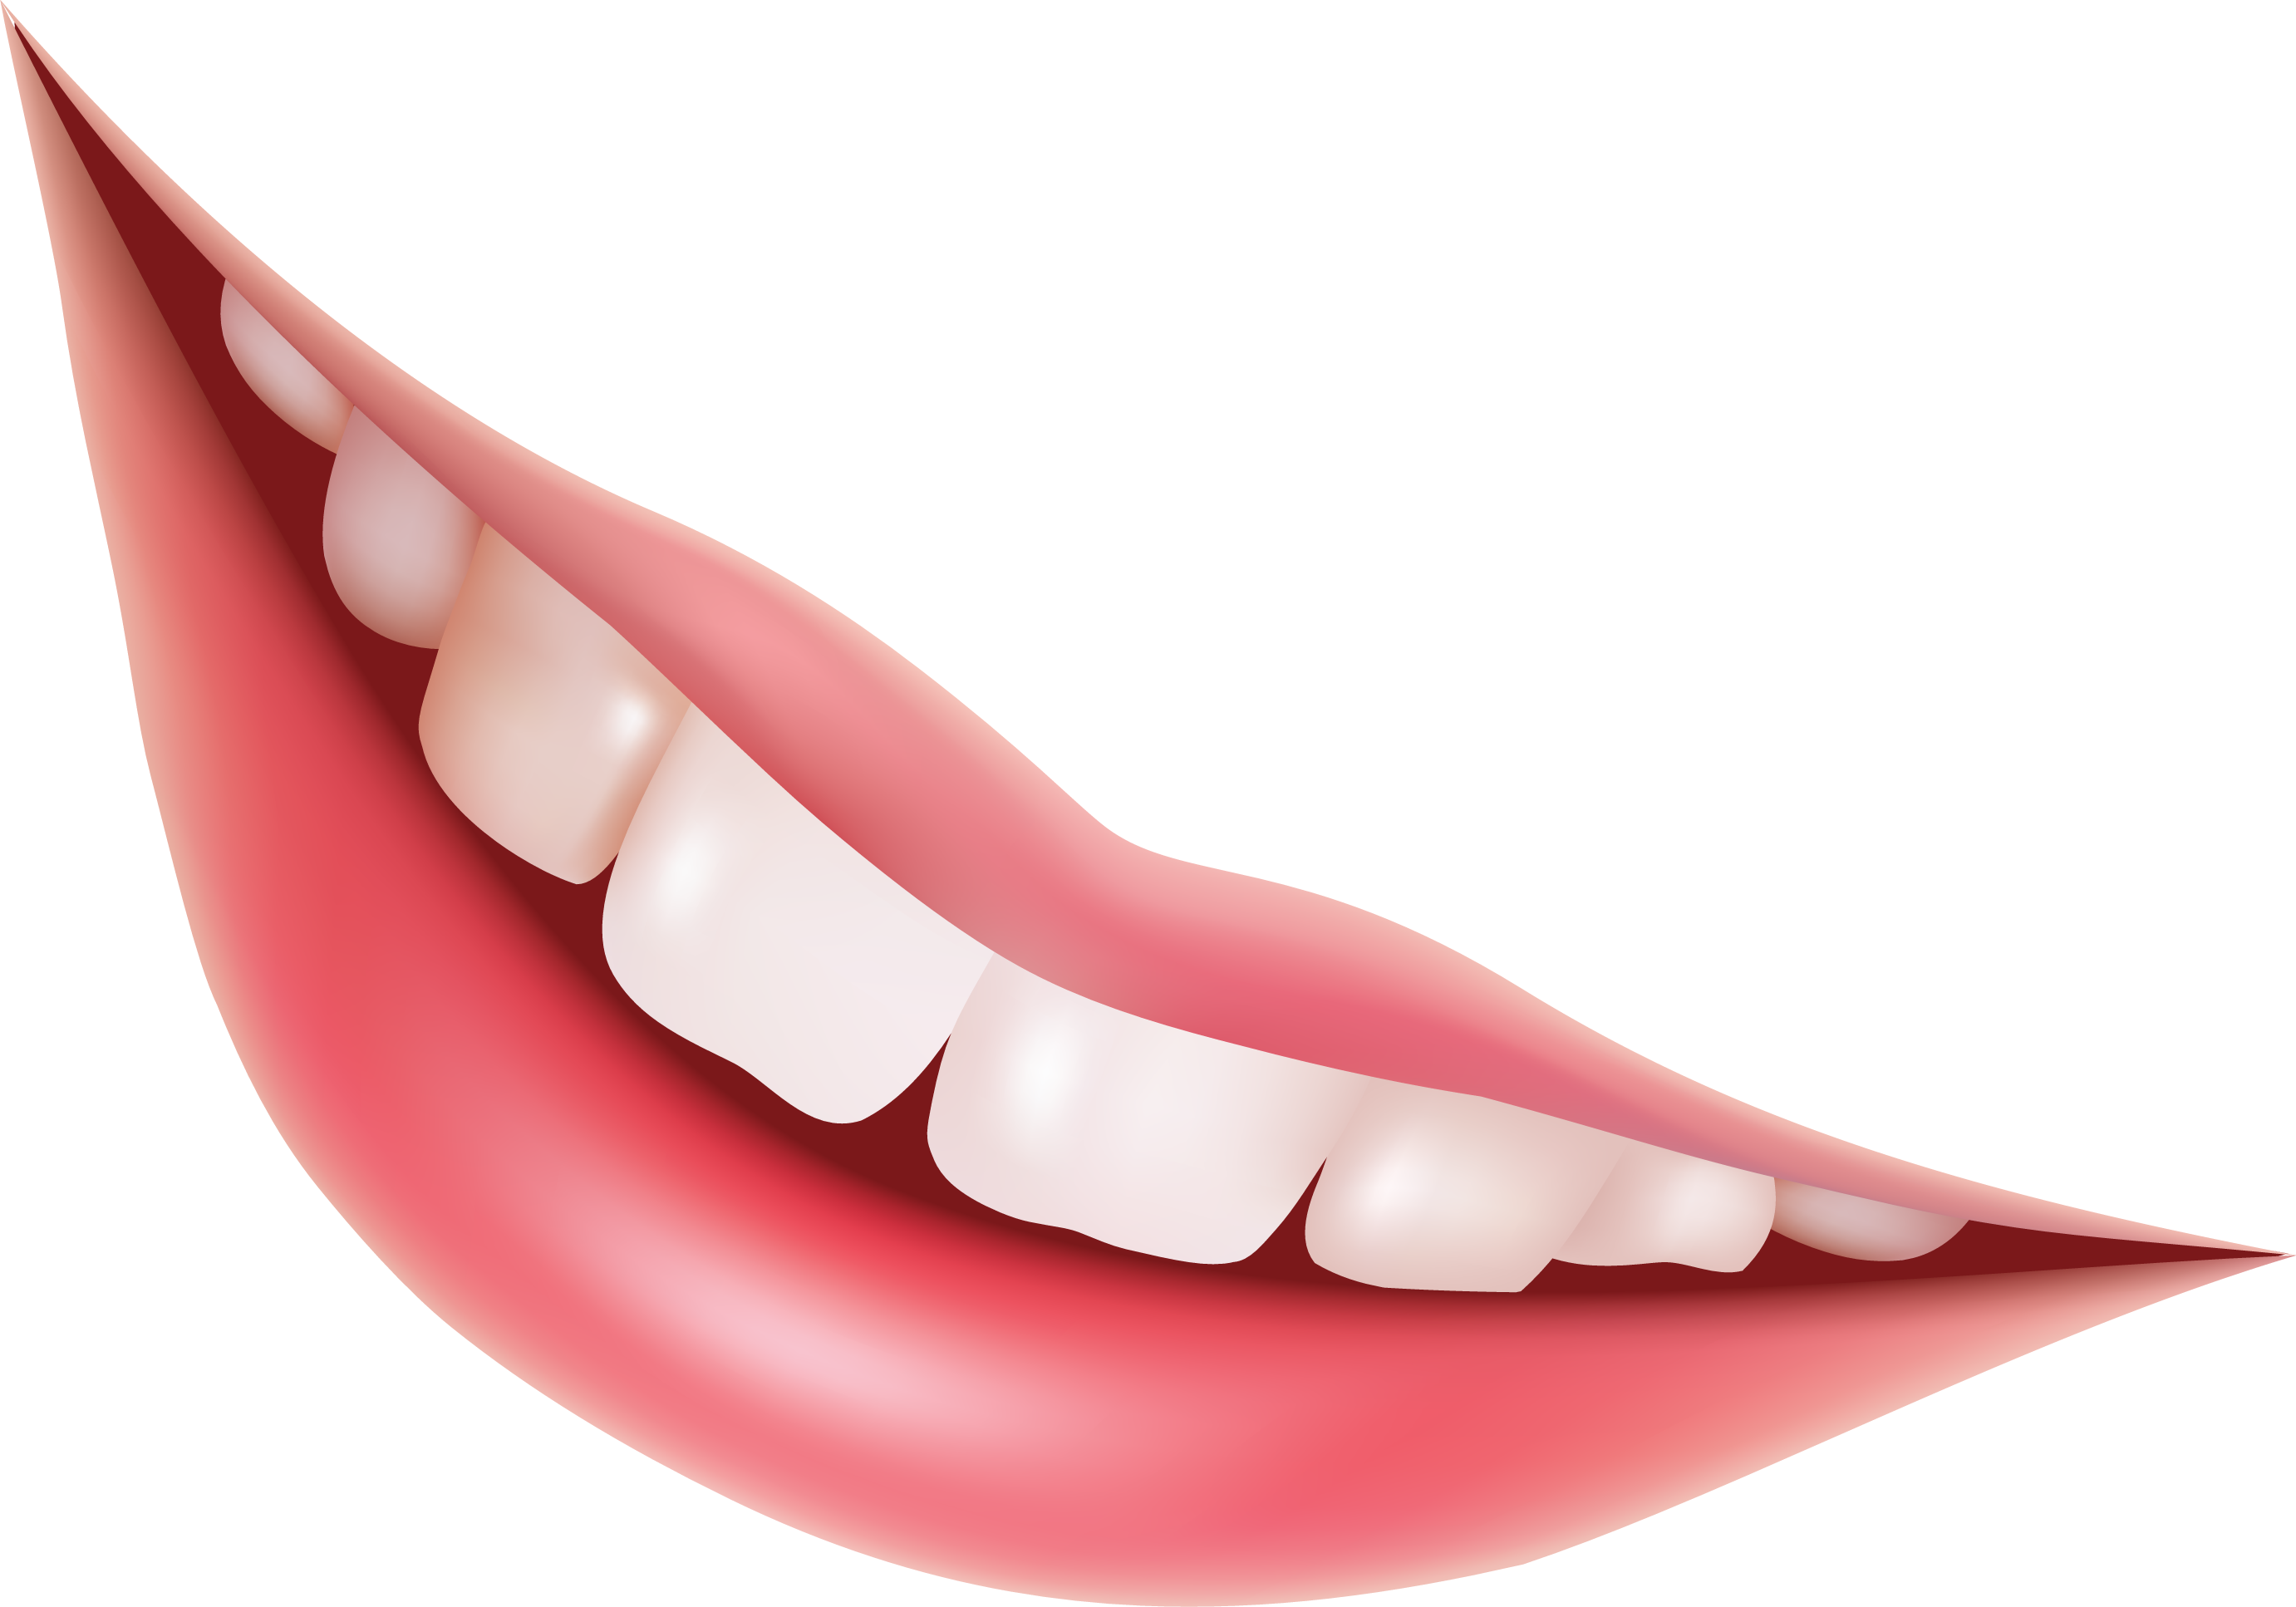 Mouth Smile Png Image Portable Image Teeth Image